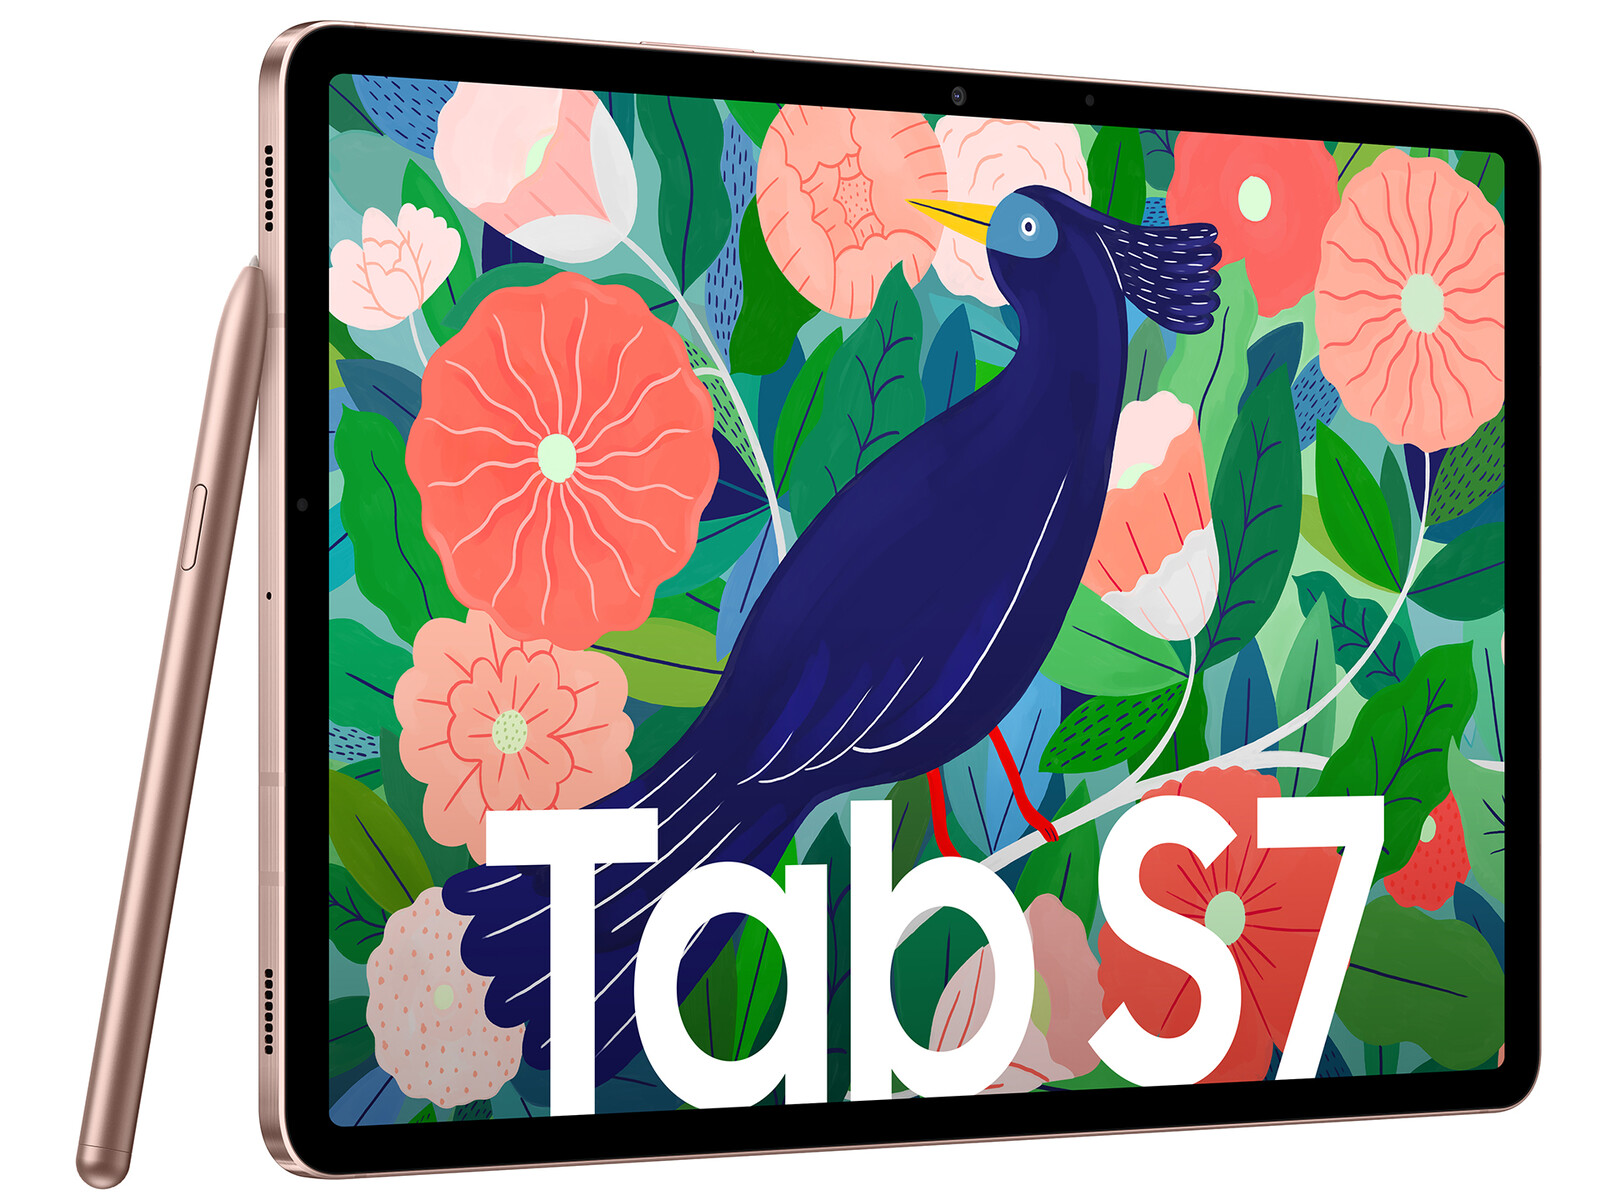 Awesome Alternative Zu Samsung Galaxy Tab S7 wallpapers to download for free greenvirals